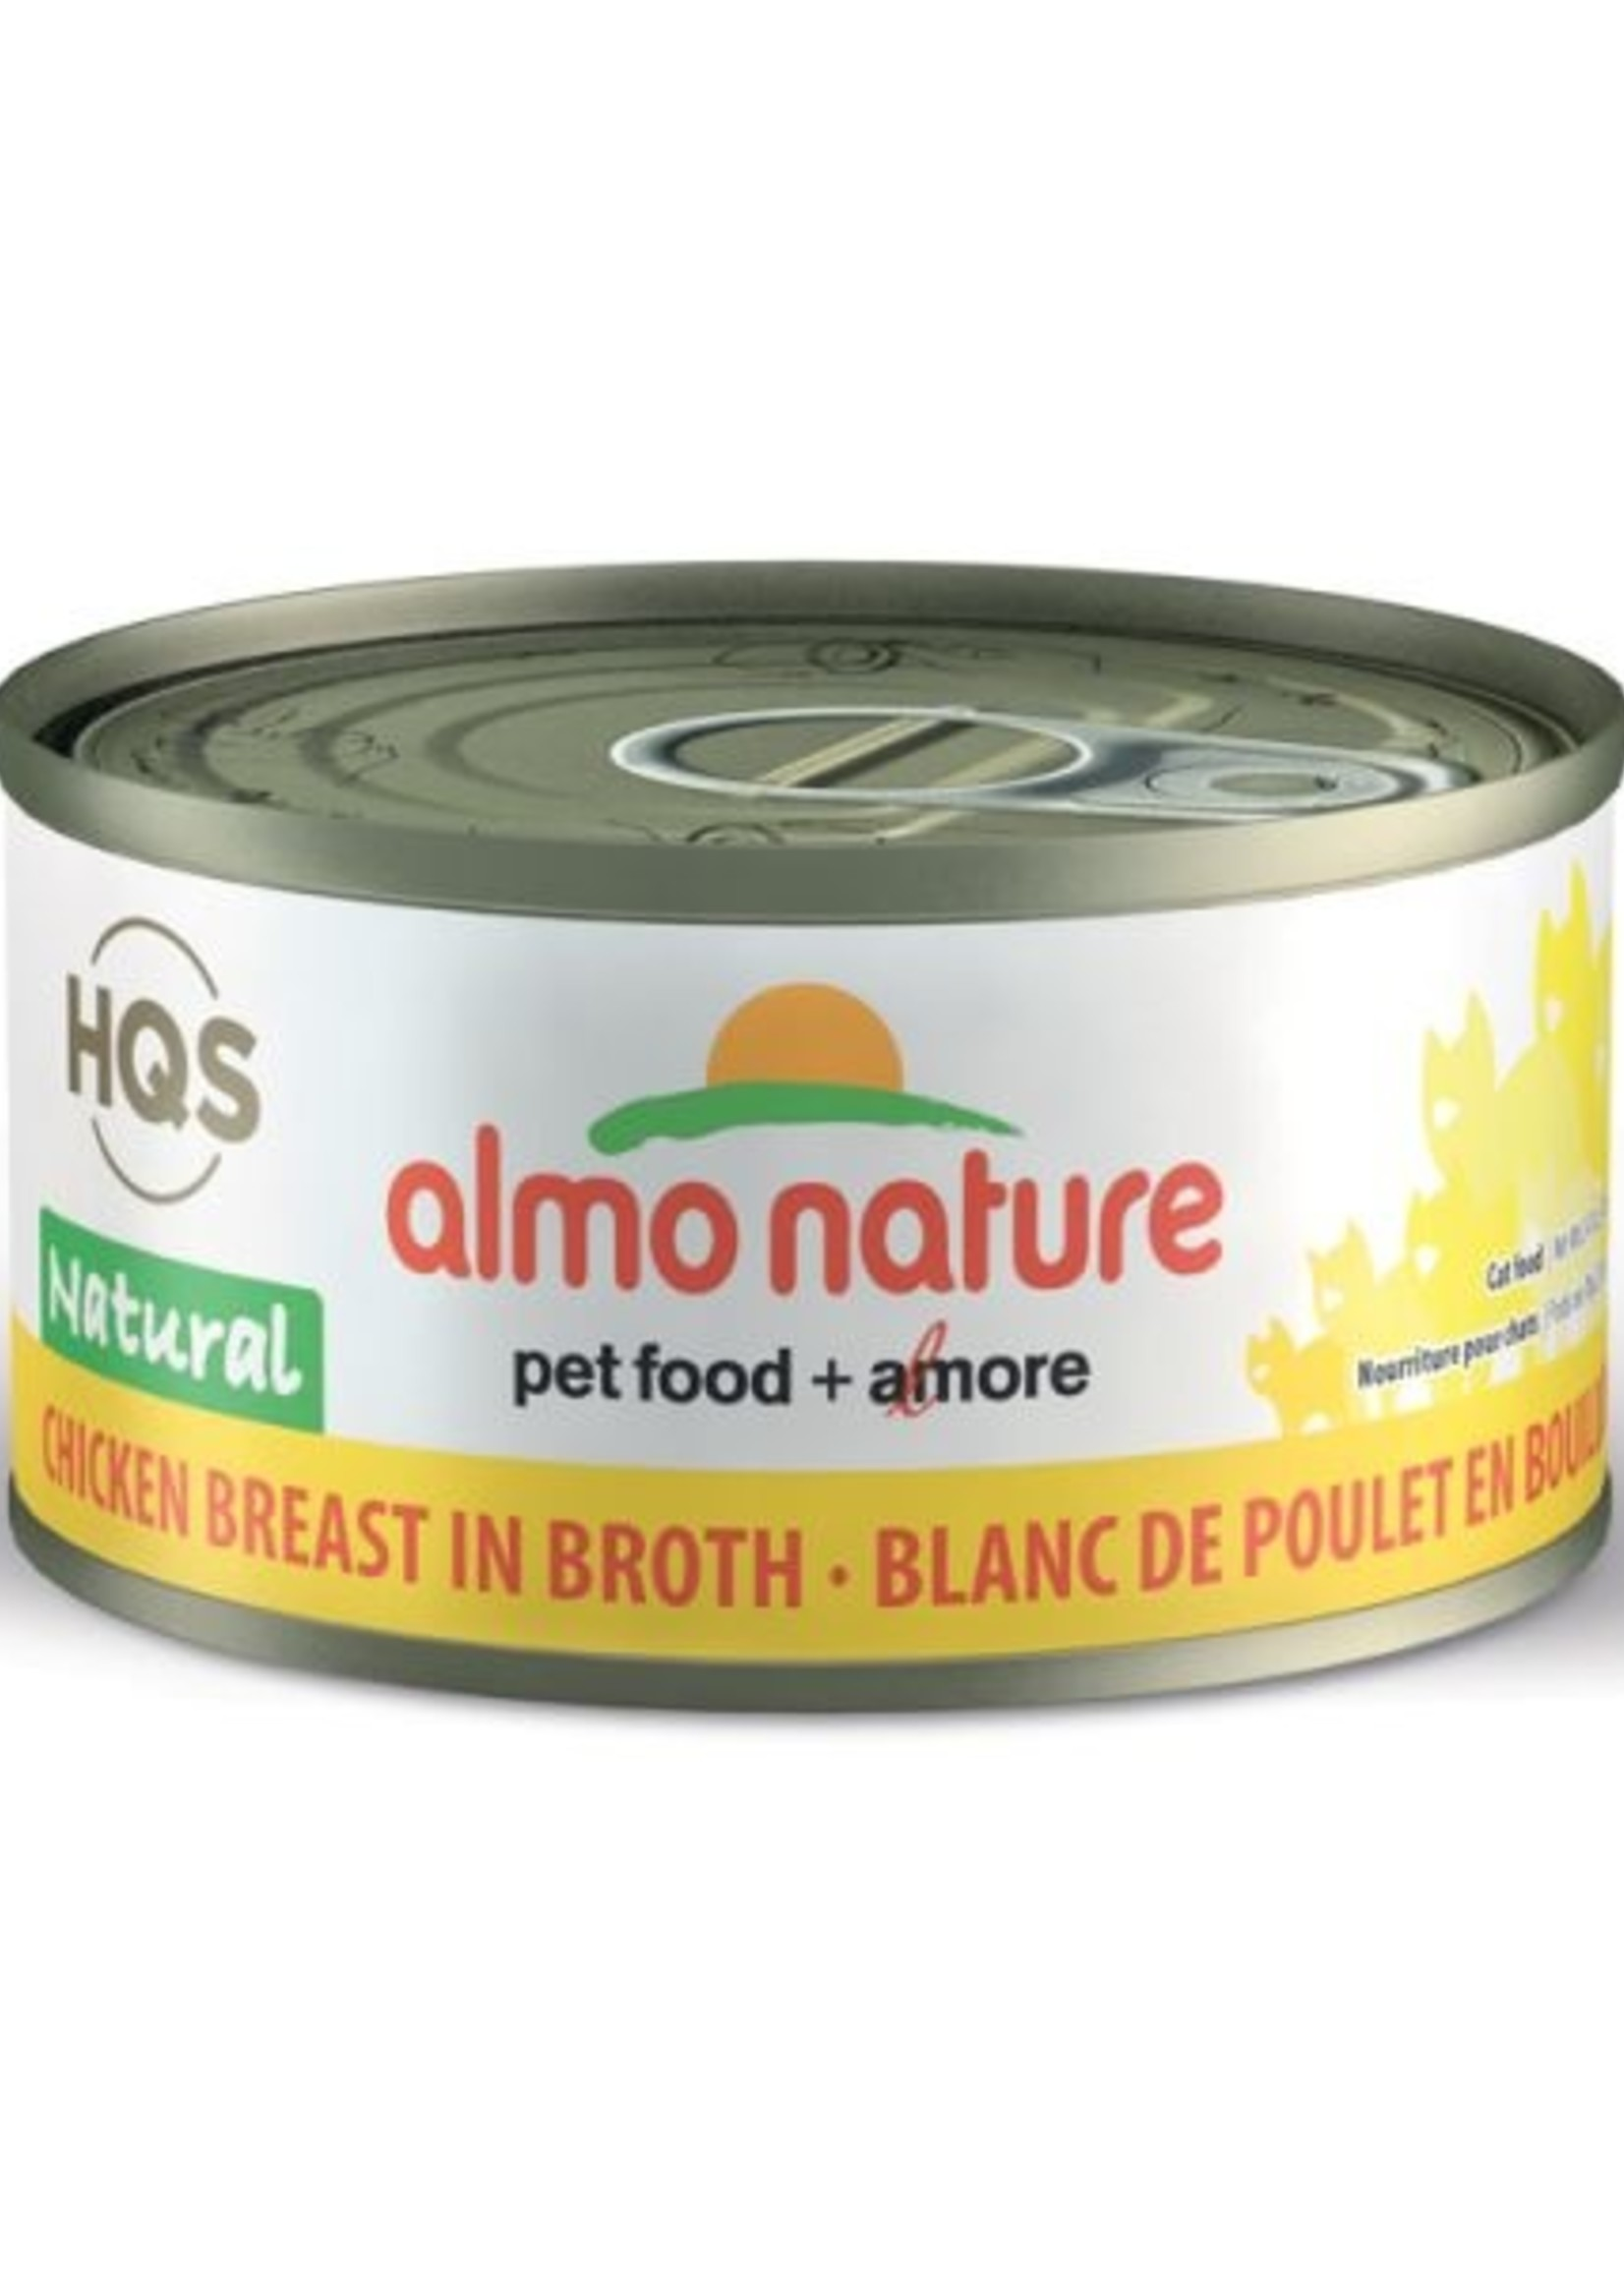 Almo Nature© Almo Nature HQS Natural Chicken Breast in Broth 70g